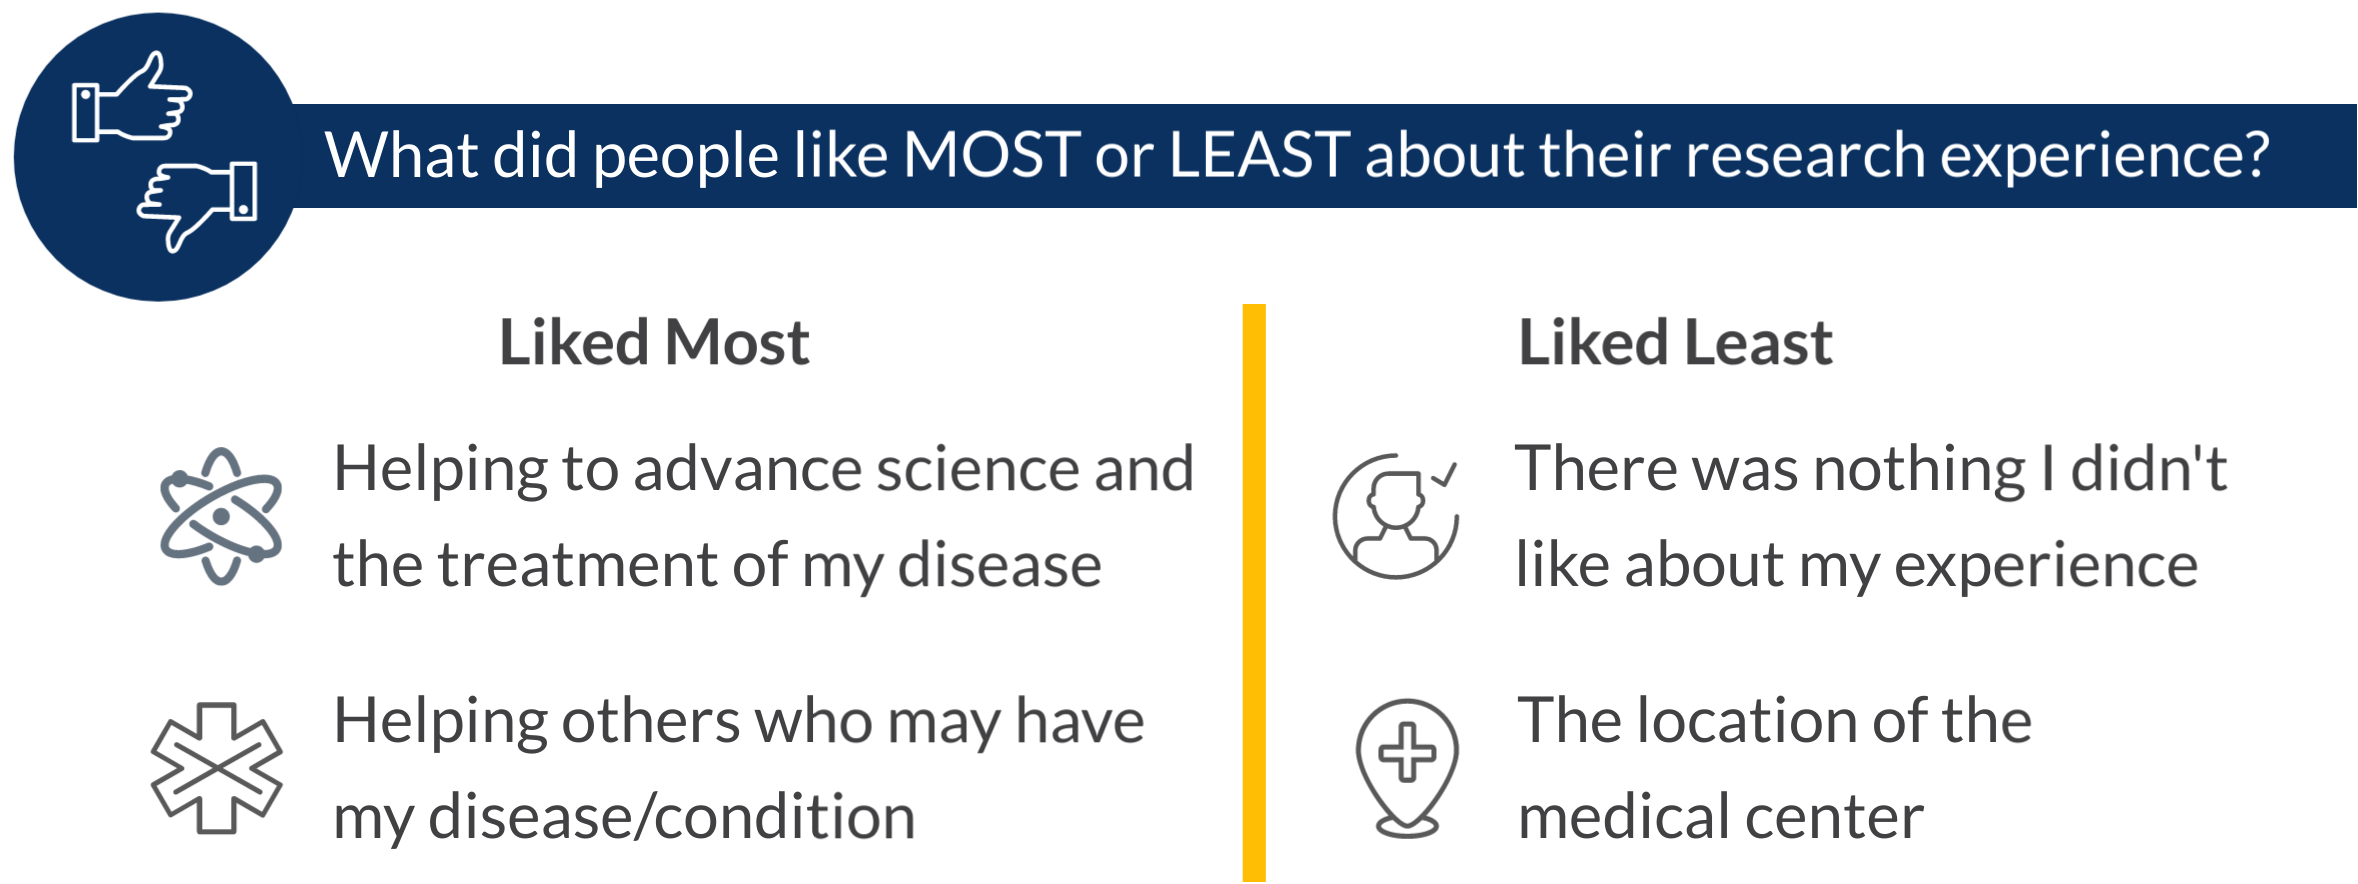 What was liked MOST about the research experience: helping to advance science and the treatment of their disease; helping others who may have my disease/condition. What was liked LEAST:There was nothing I didn't like; the location of the medical center